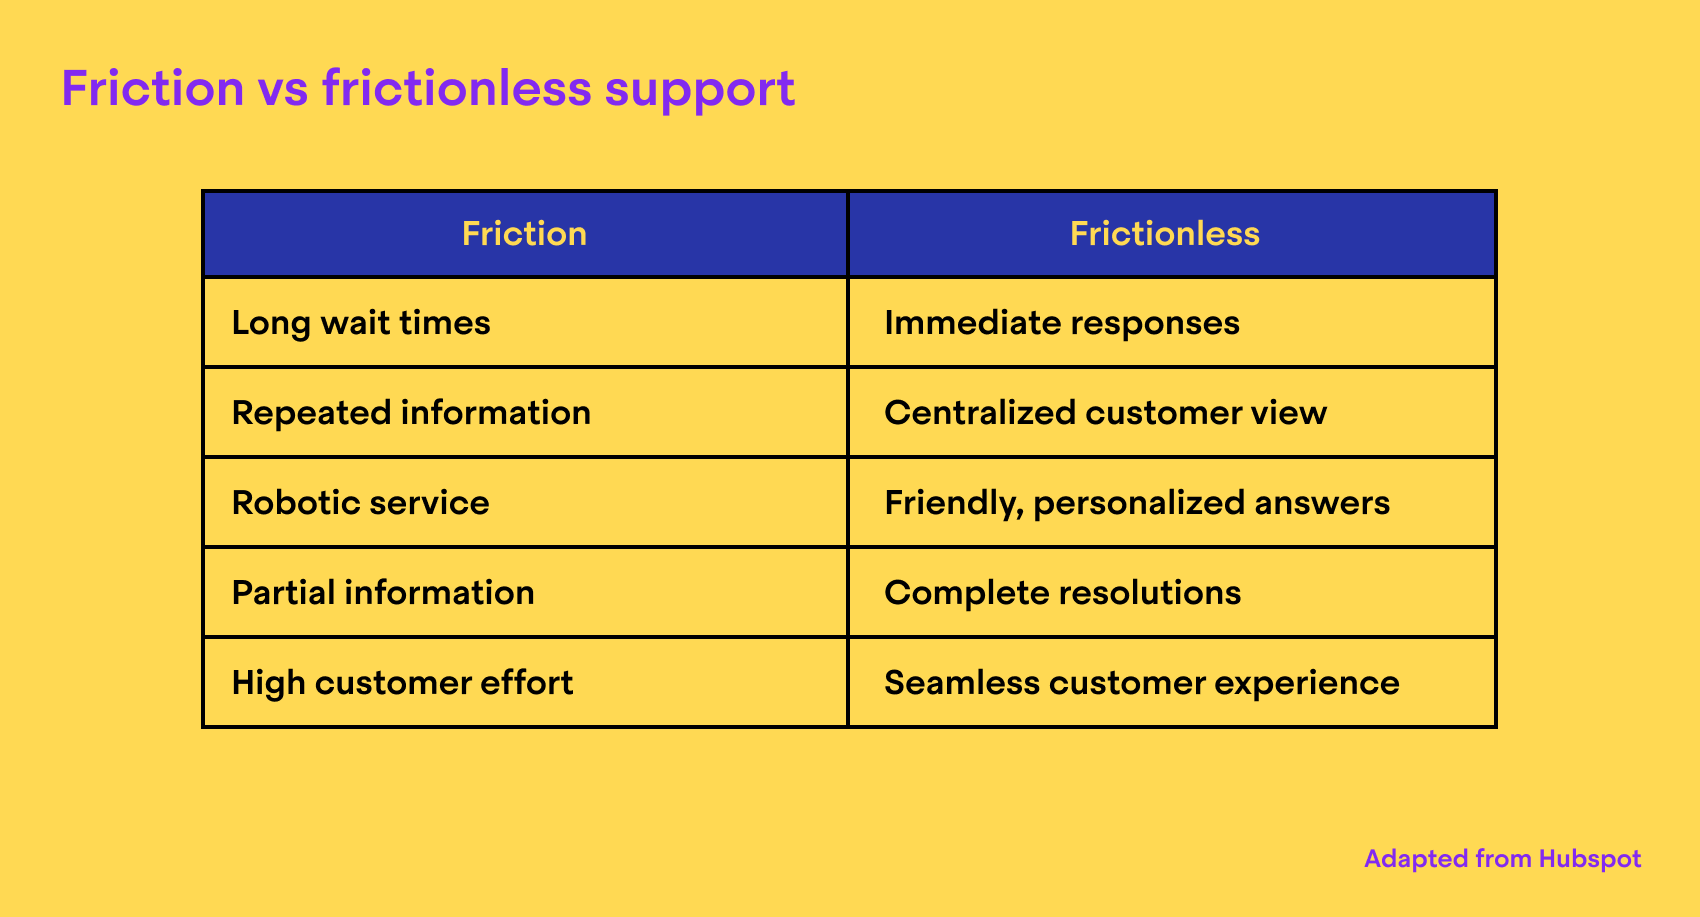 Friction versus frictionless customer support